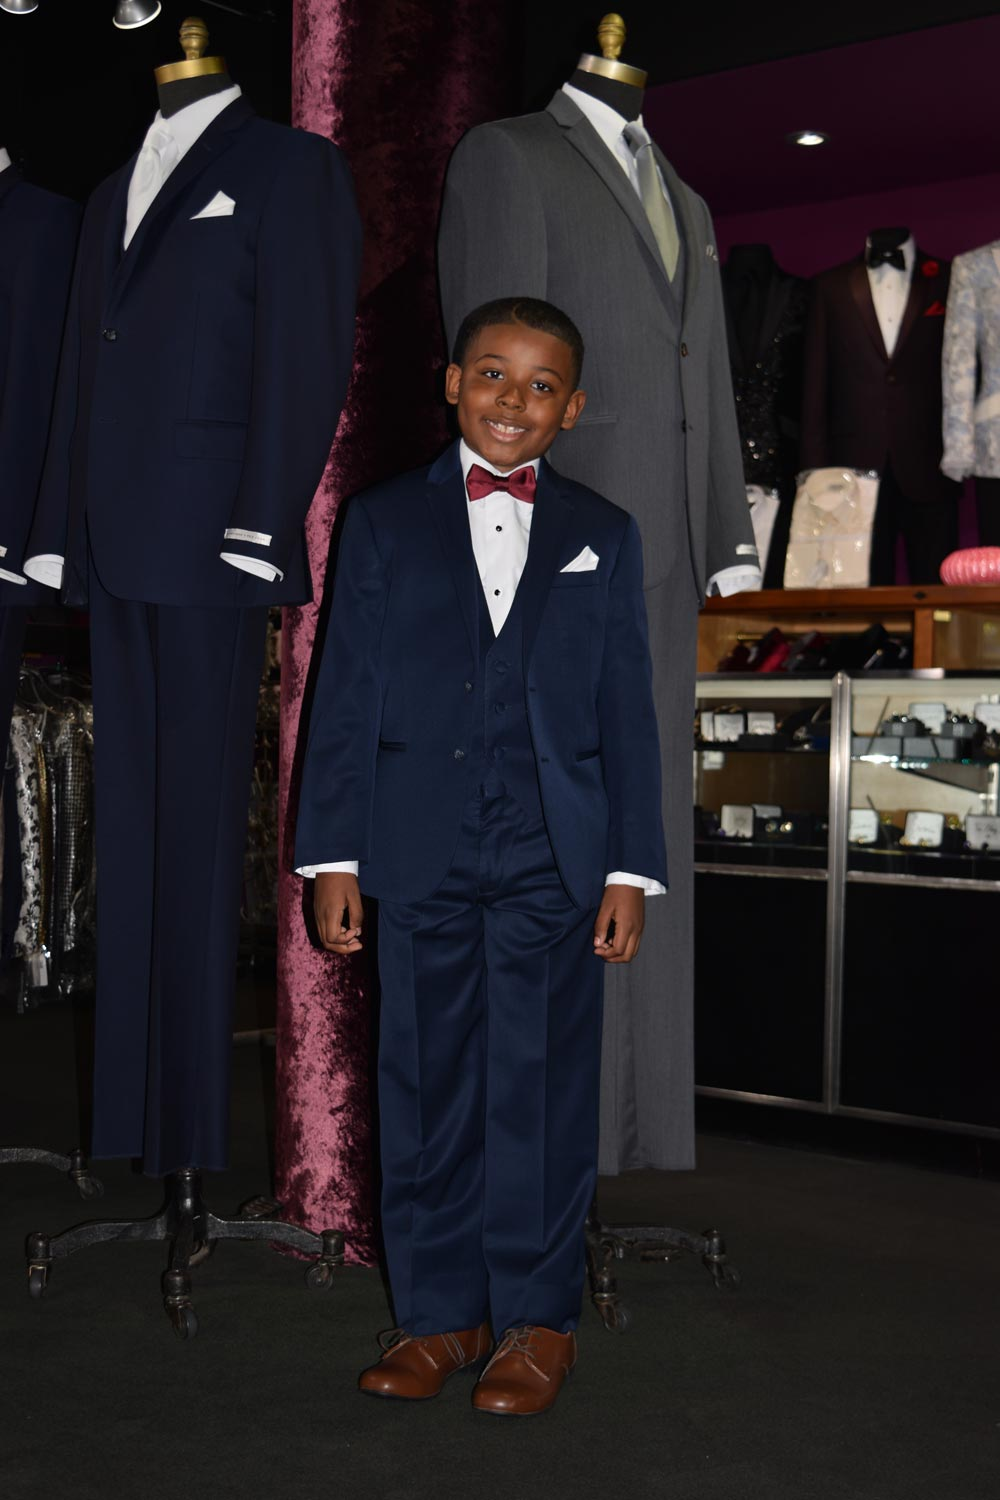 Children Suits and Tuxedos